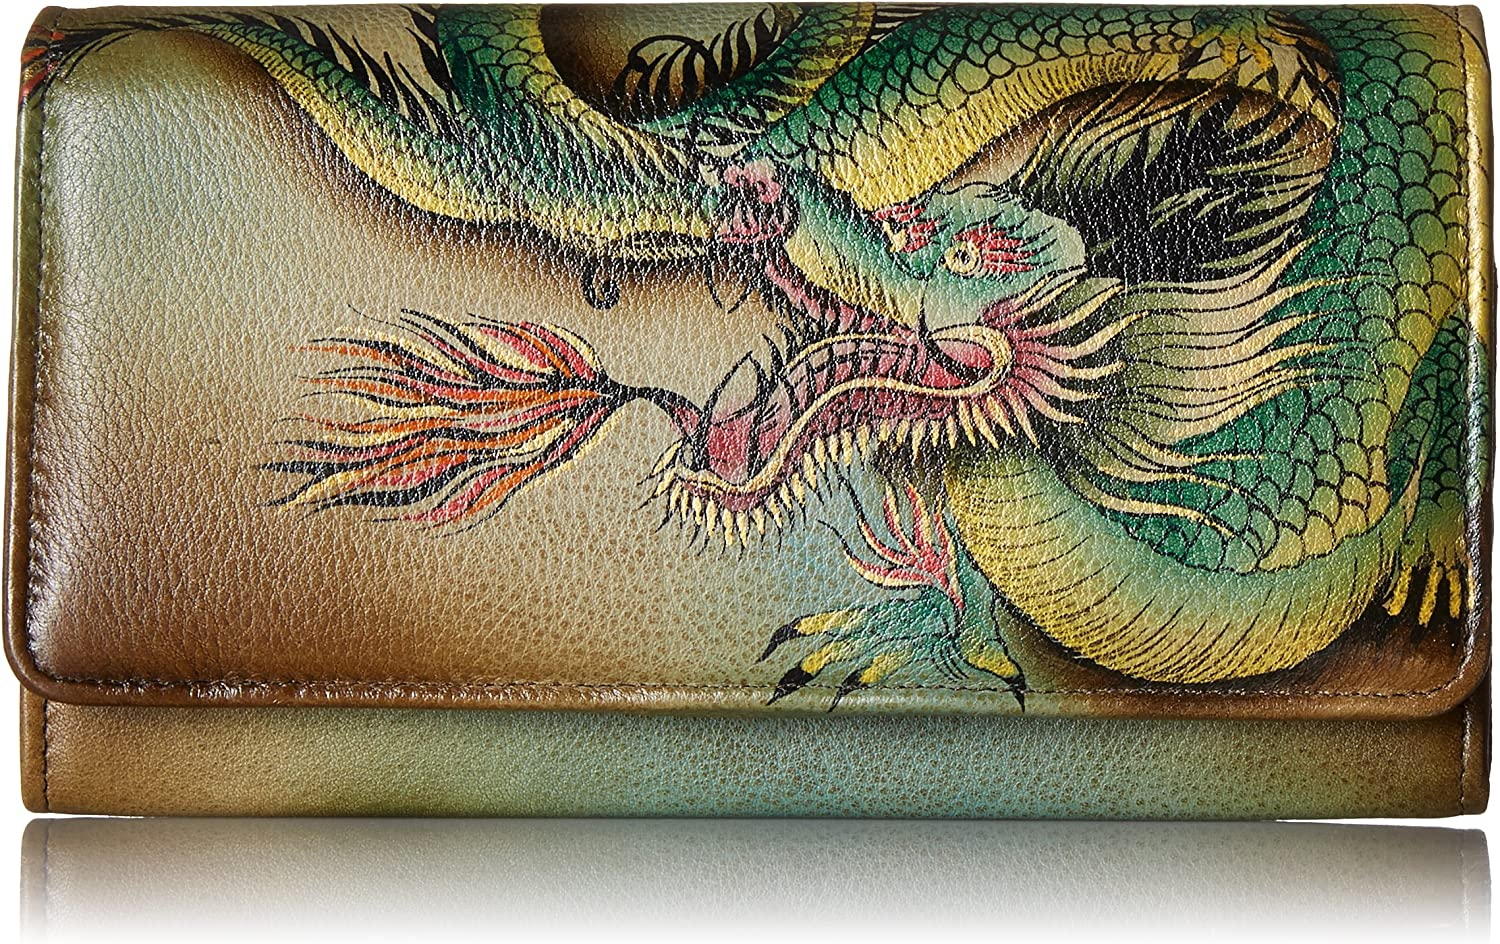 Anuschka Hand Painted Rfid Blocking Accordion Flap Wallet Hidden Dragon Wallet, HdrHidden Dragon, One Size